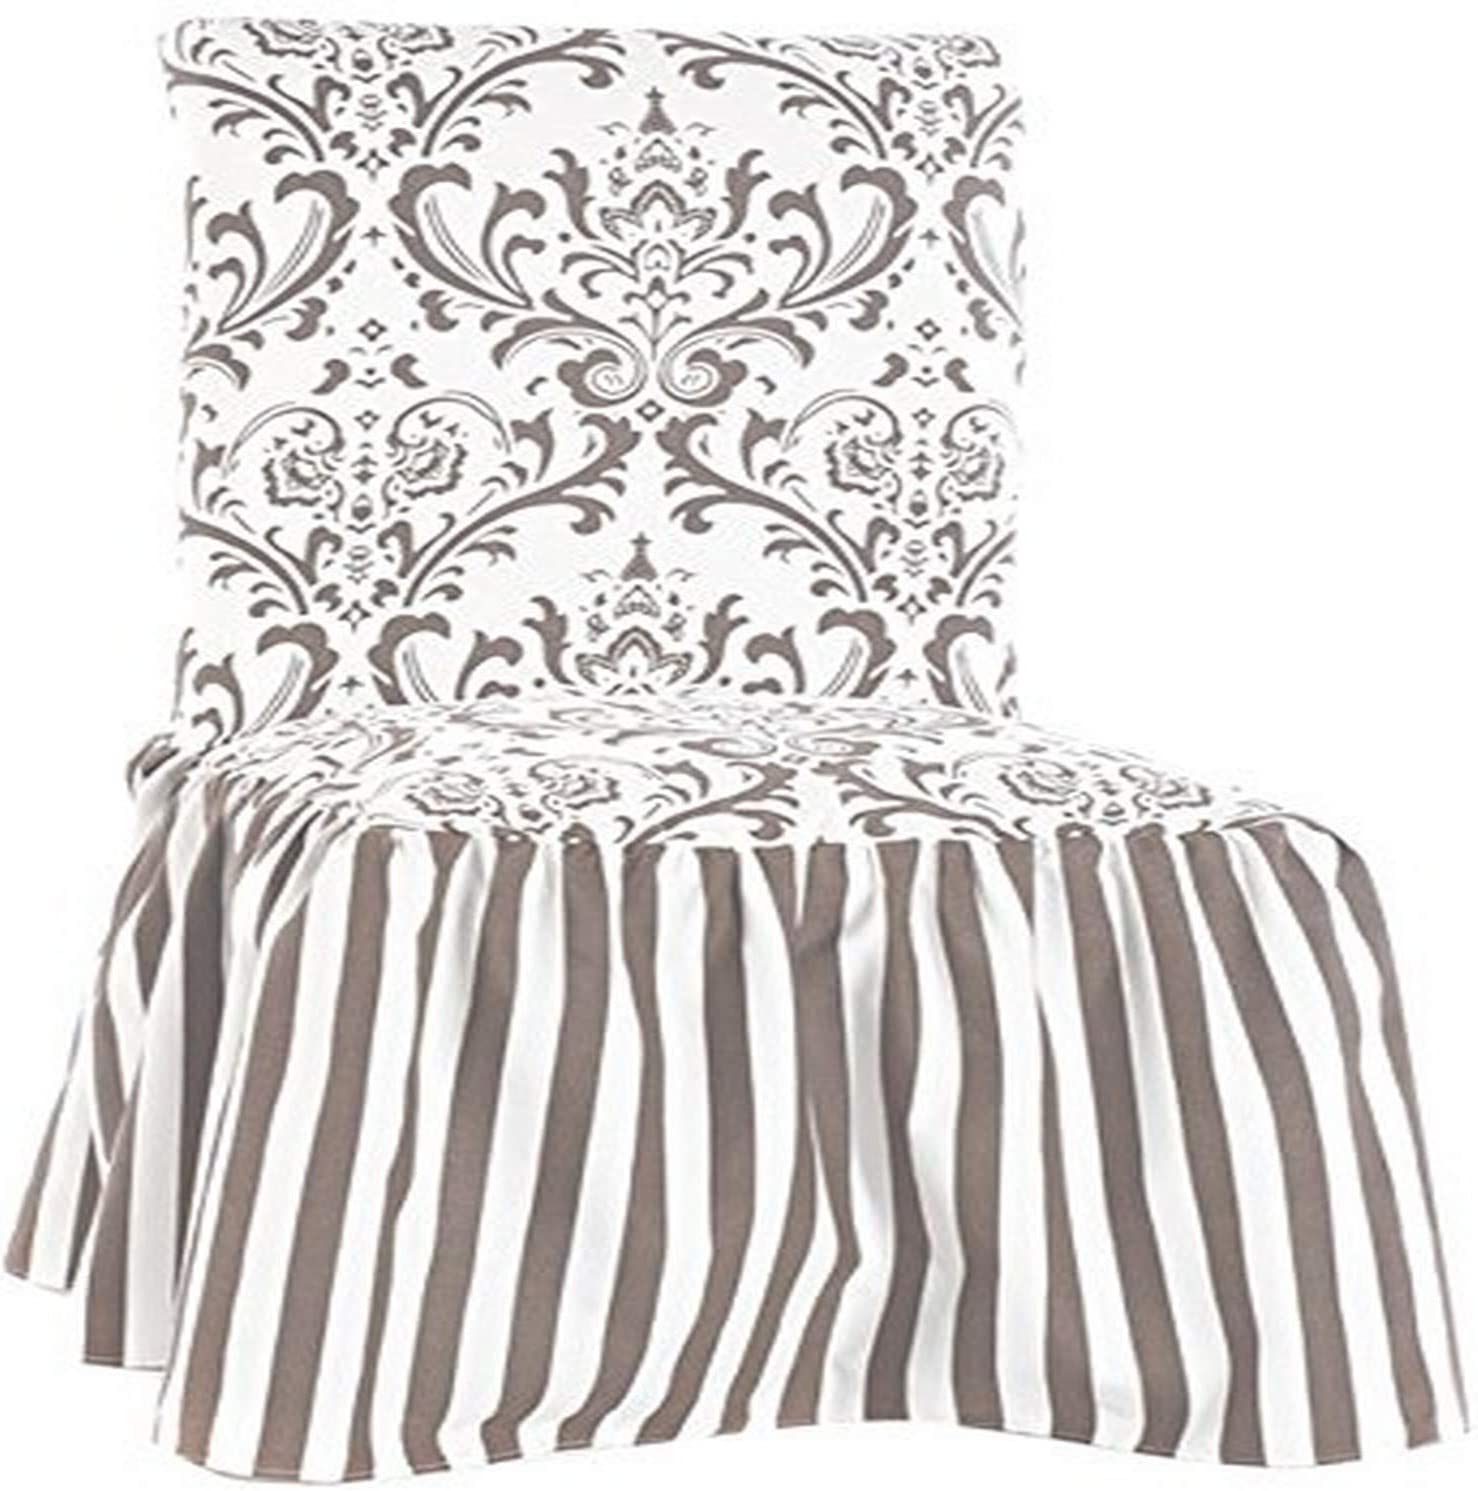 Amazon Com Classic Slipcovers Csi Damask Ruffled Dining Chair Cover Brown Stripe Home Kitchen